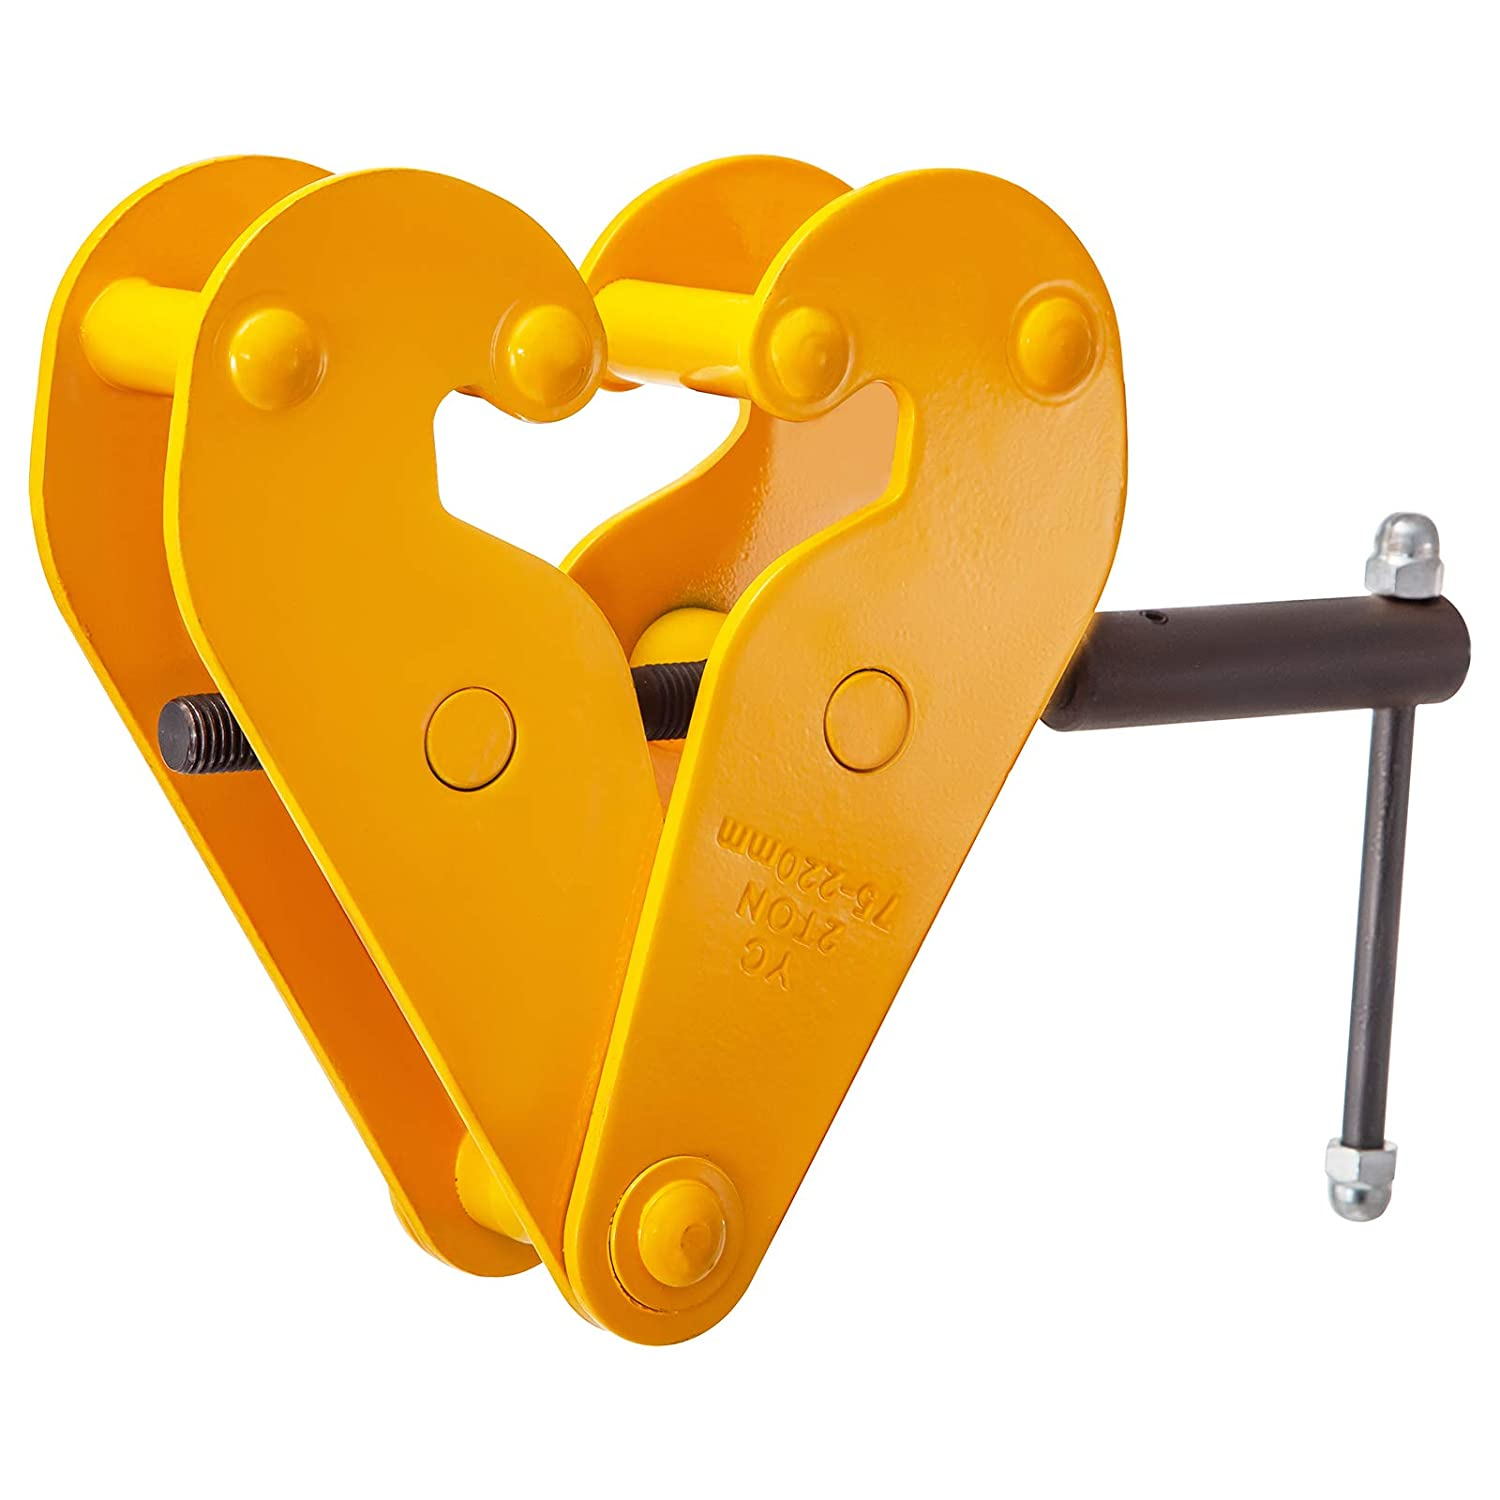 BestEquip 2200lbs//1ton Capacity Beam Clamp I Beam Lifting Clamp 3Inch-9Inch Opening Range Beam Clamps for Rigging Heavy Duty Steel Beam Clamp Tool Beam Hangers for Lifting Rigging Yellow